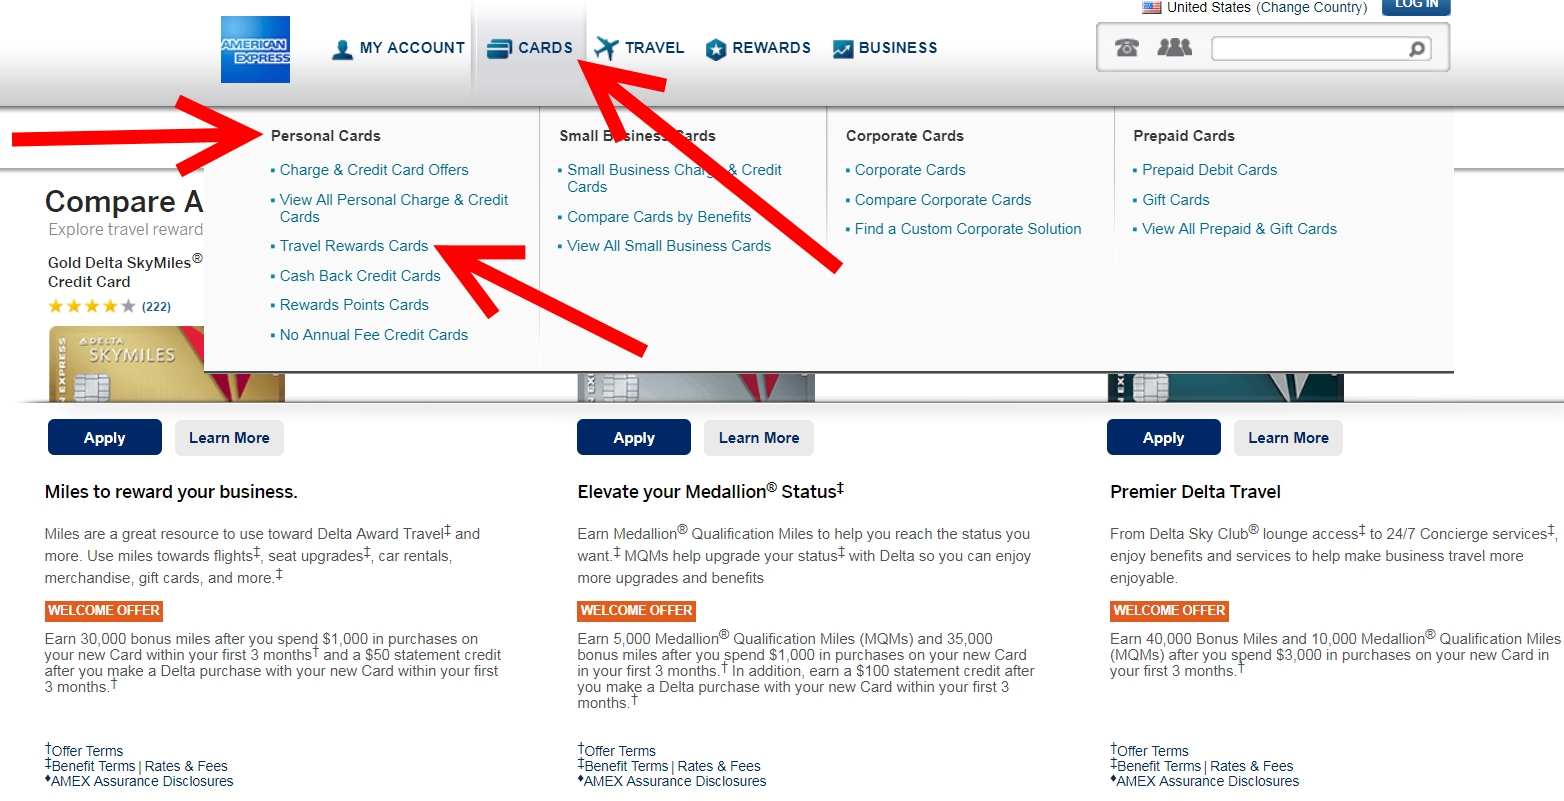 Amex travel point cards rens pointsrens points reheart Choice Image